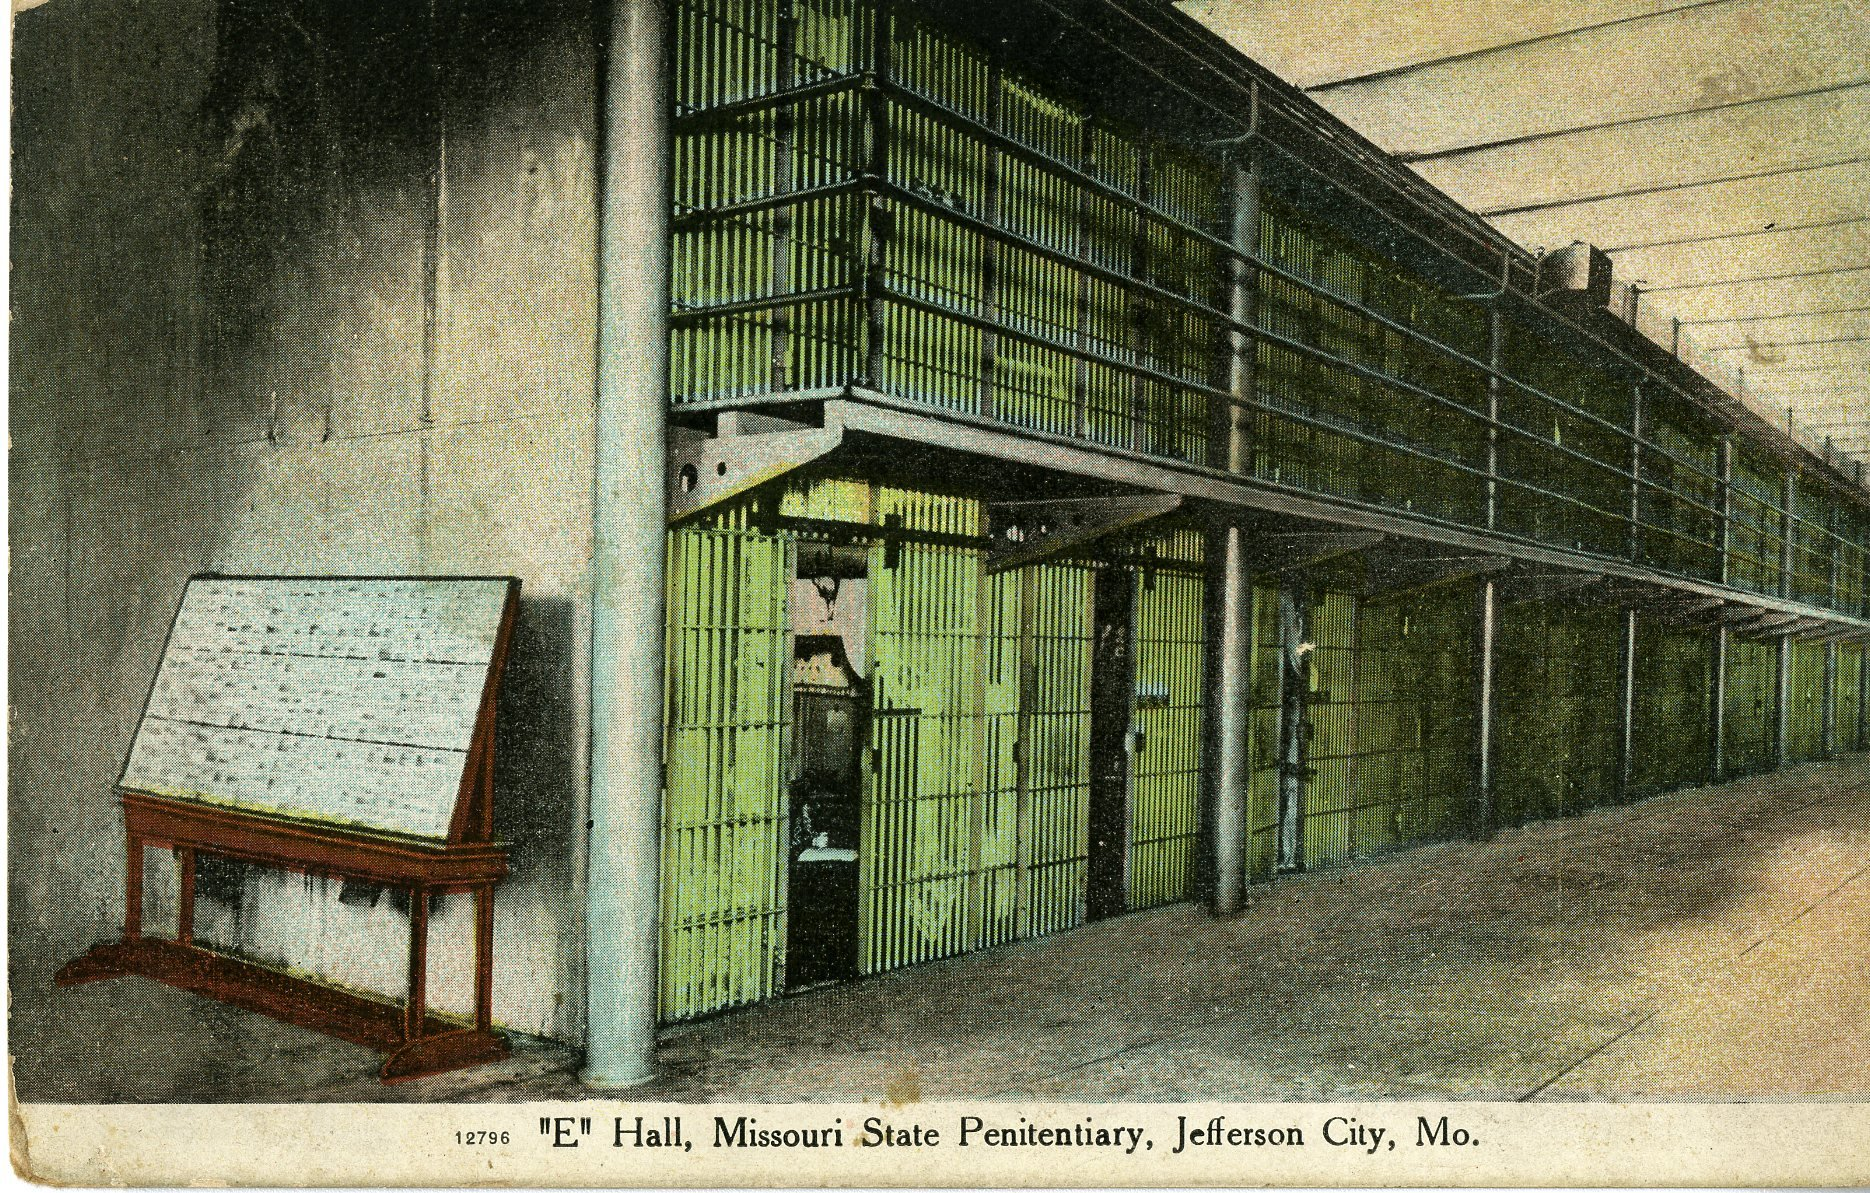 """Postcard showing the cellblocks in """"E-Hall"""" at the Missouri State Penitentiary.  Postcard mailed in 1954.  Image courtesy of the Missouri State Museum's collection."""